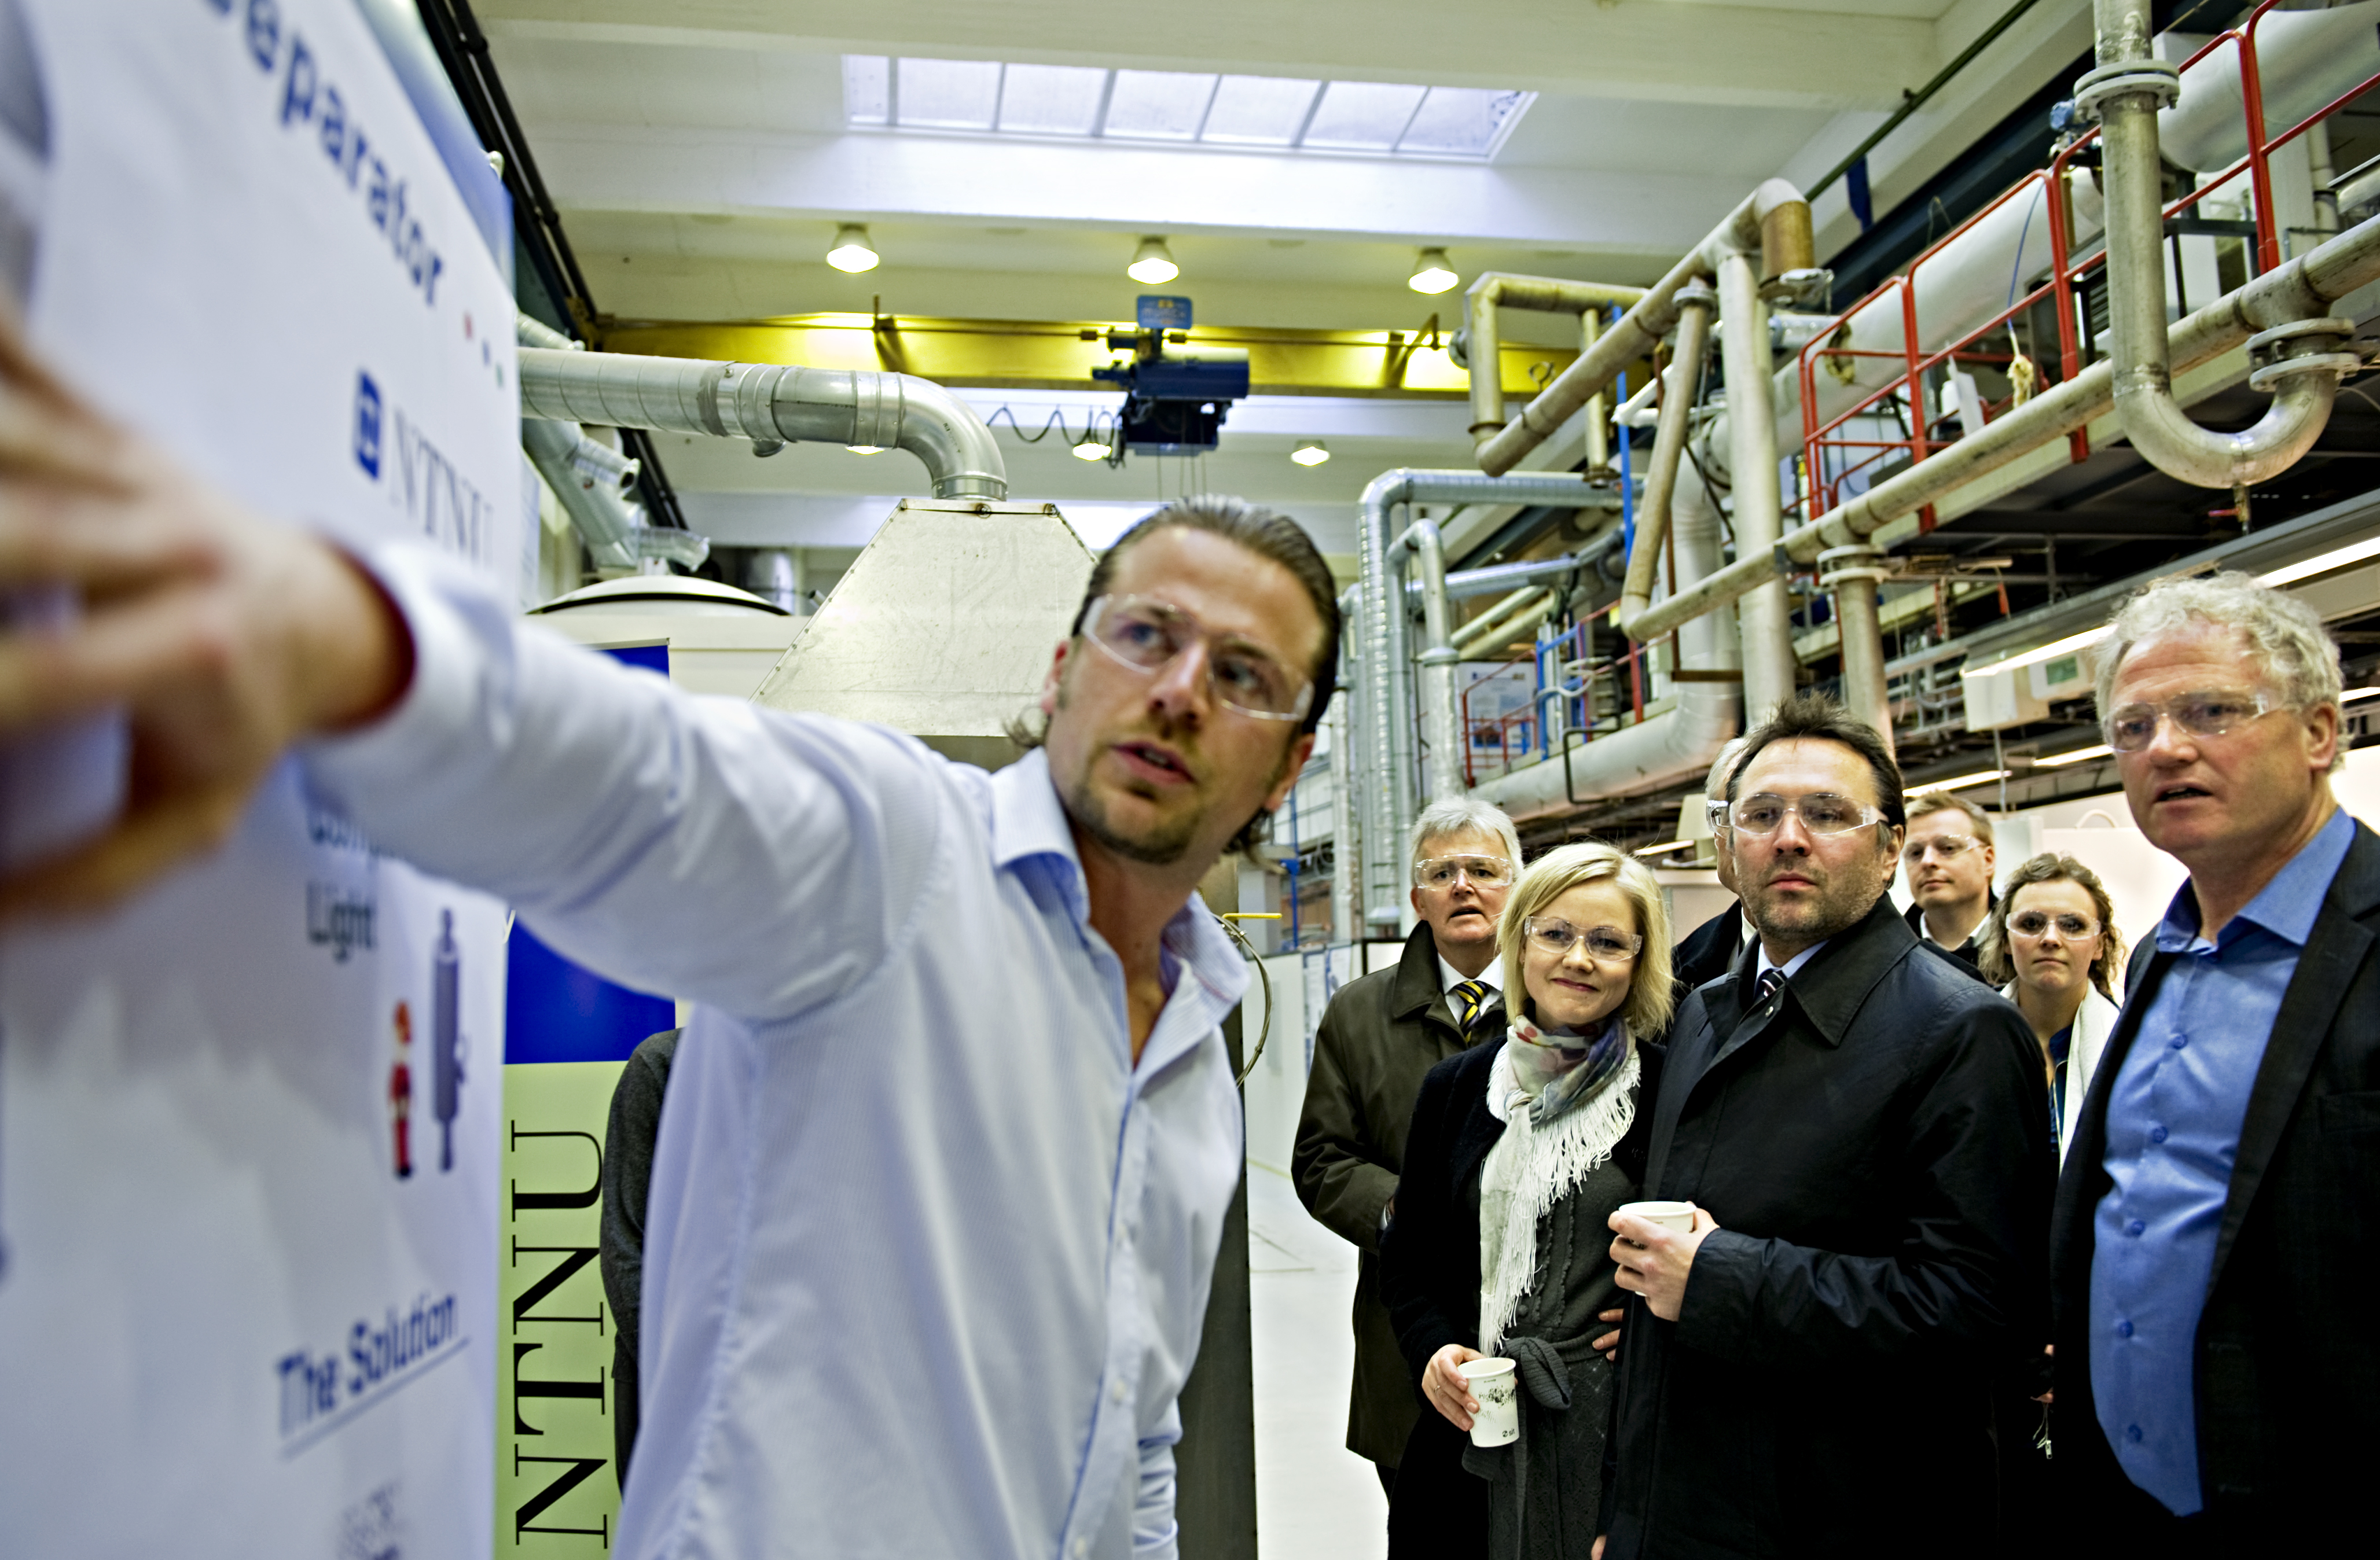 Sondre Jacobsen (CEO InnSep AS, far left) in the NTNU laboratories discussing the challenges of bridging the gap between basic research and commercial applications of clean technology with Johan Hustad (Pro-Rector for Innovation at NTNU, far right) and Tore Sandvik (County Mayor, second from right). Picture courtesy of NTNU